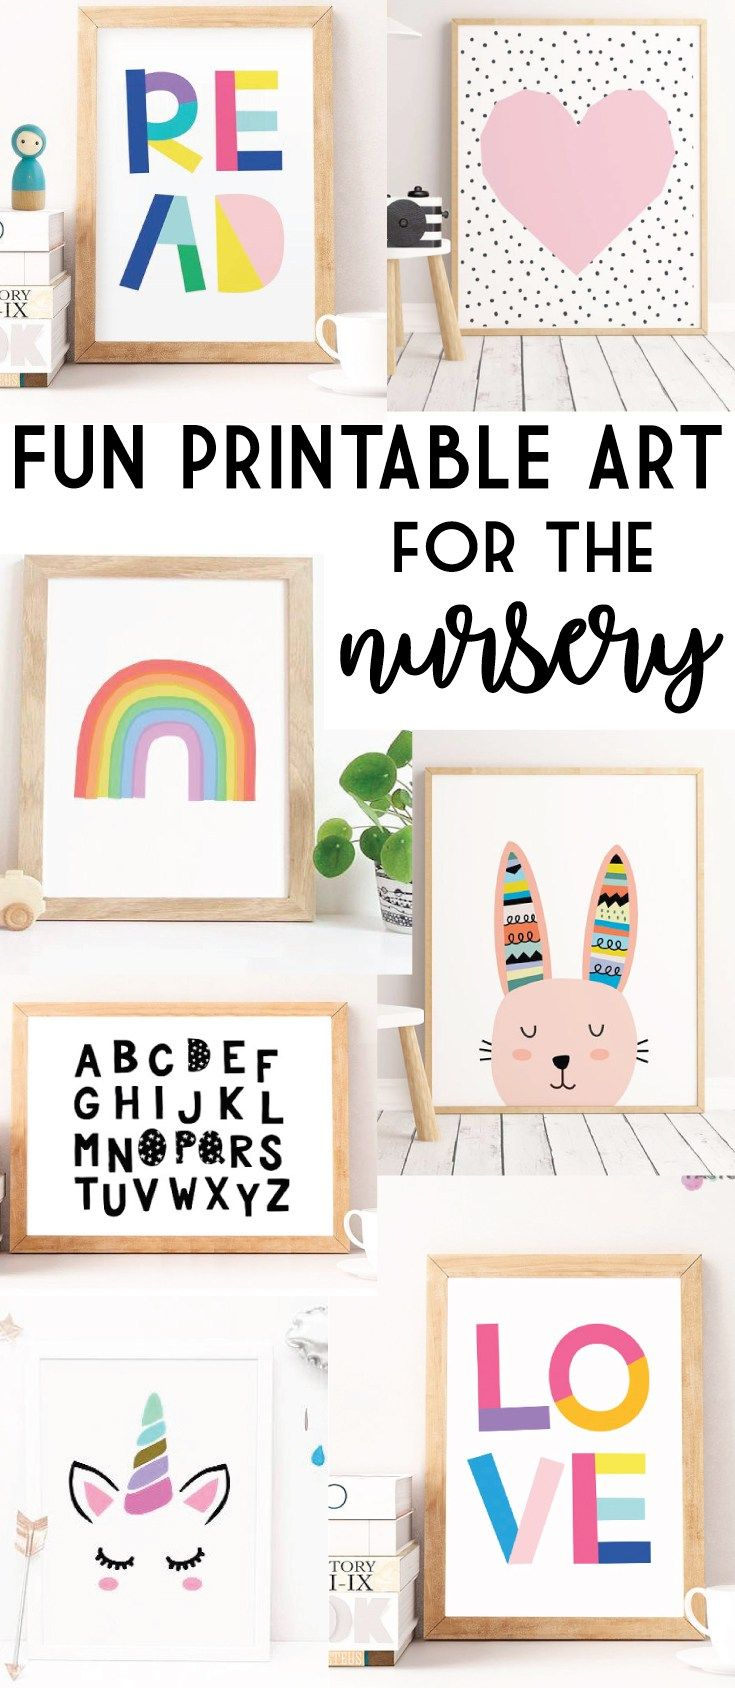 Fun Printable Wall Art for the Nursery #moodbored #wallart #digitaldownload #ad